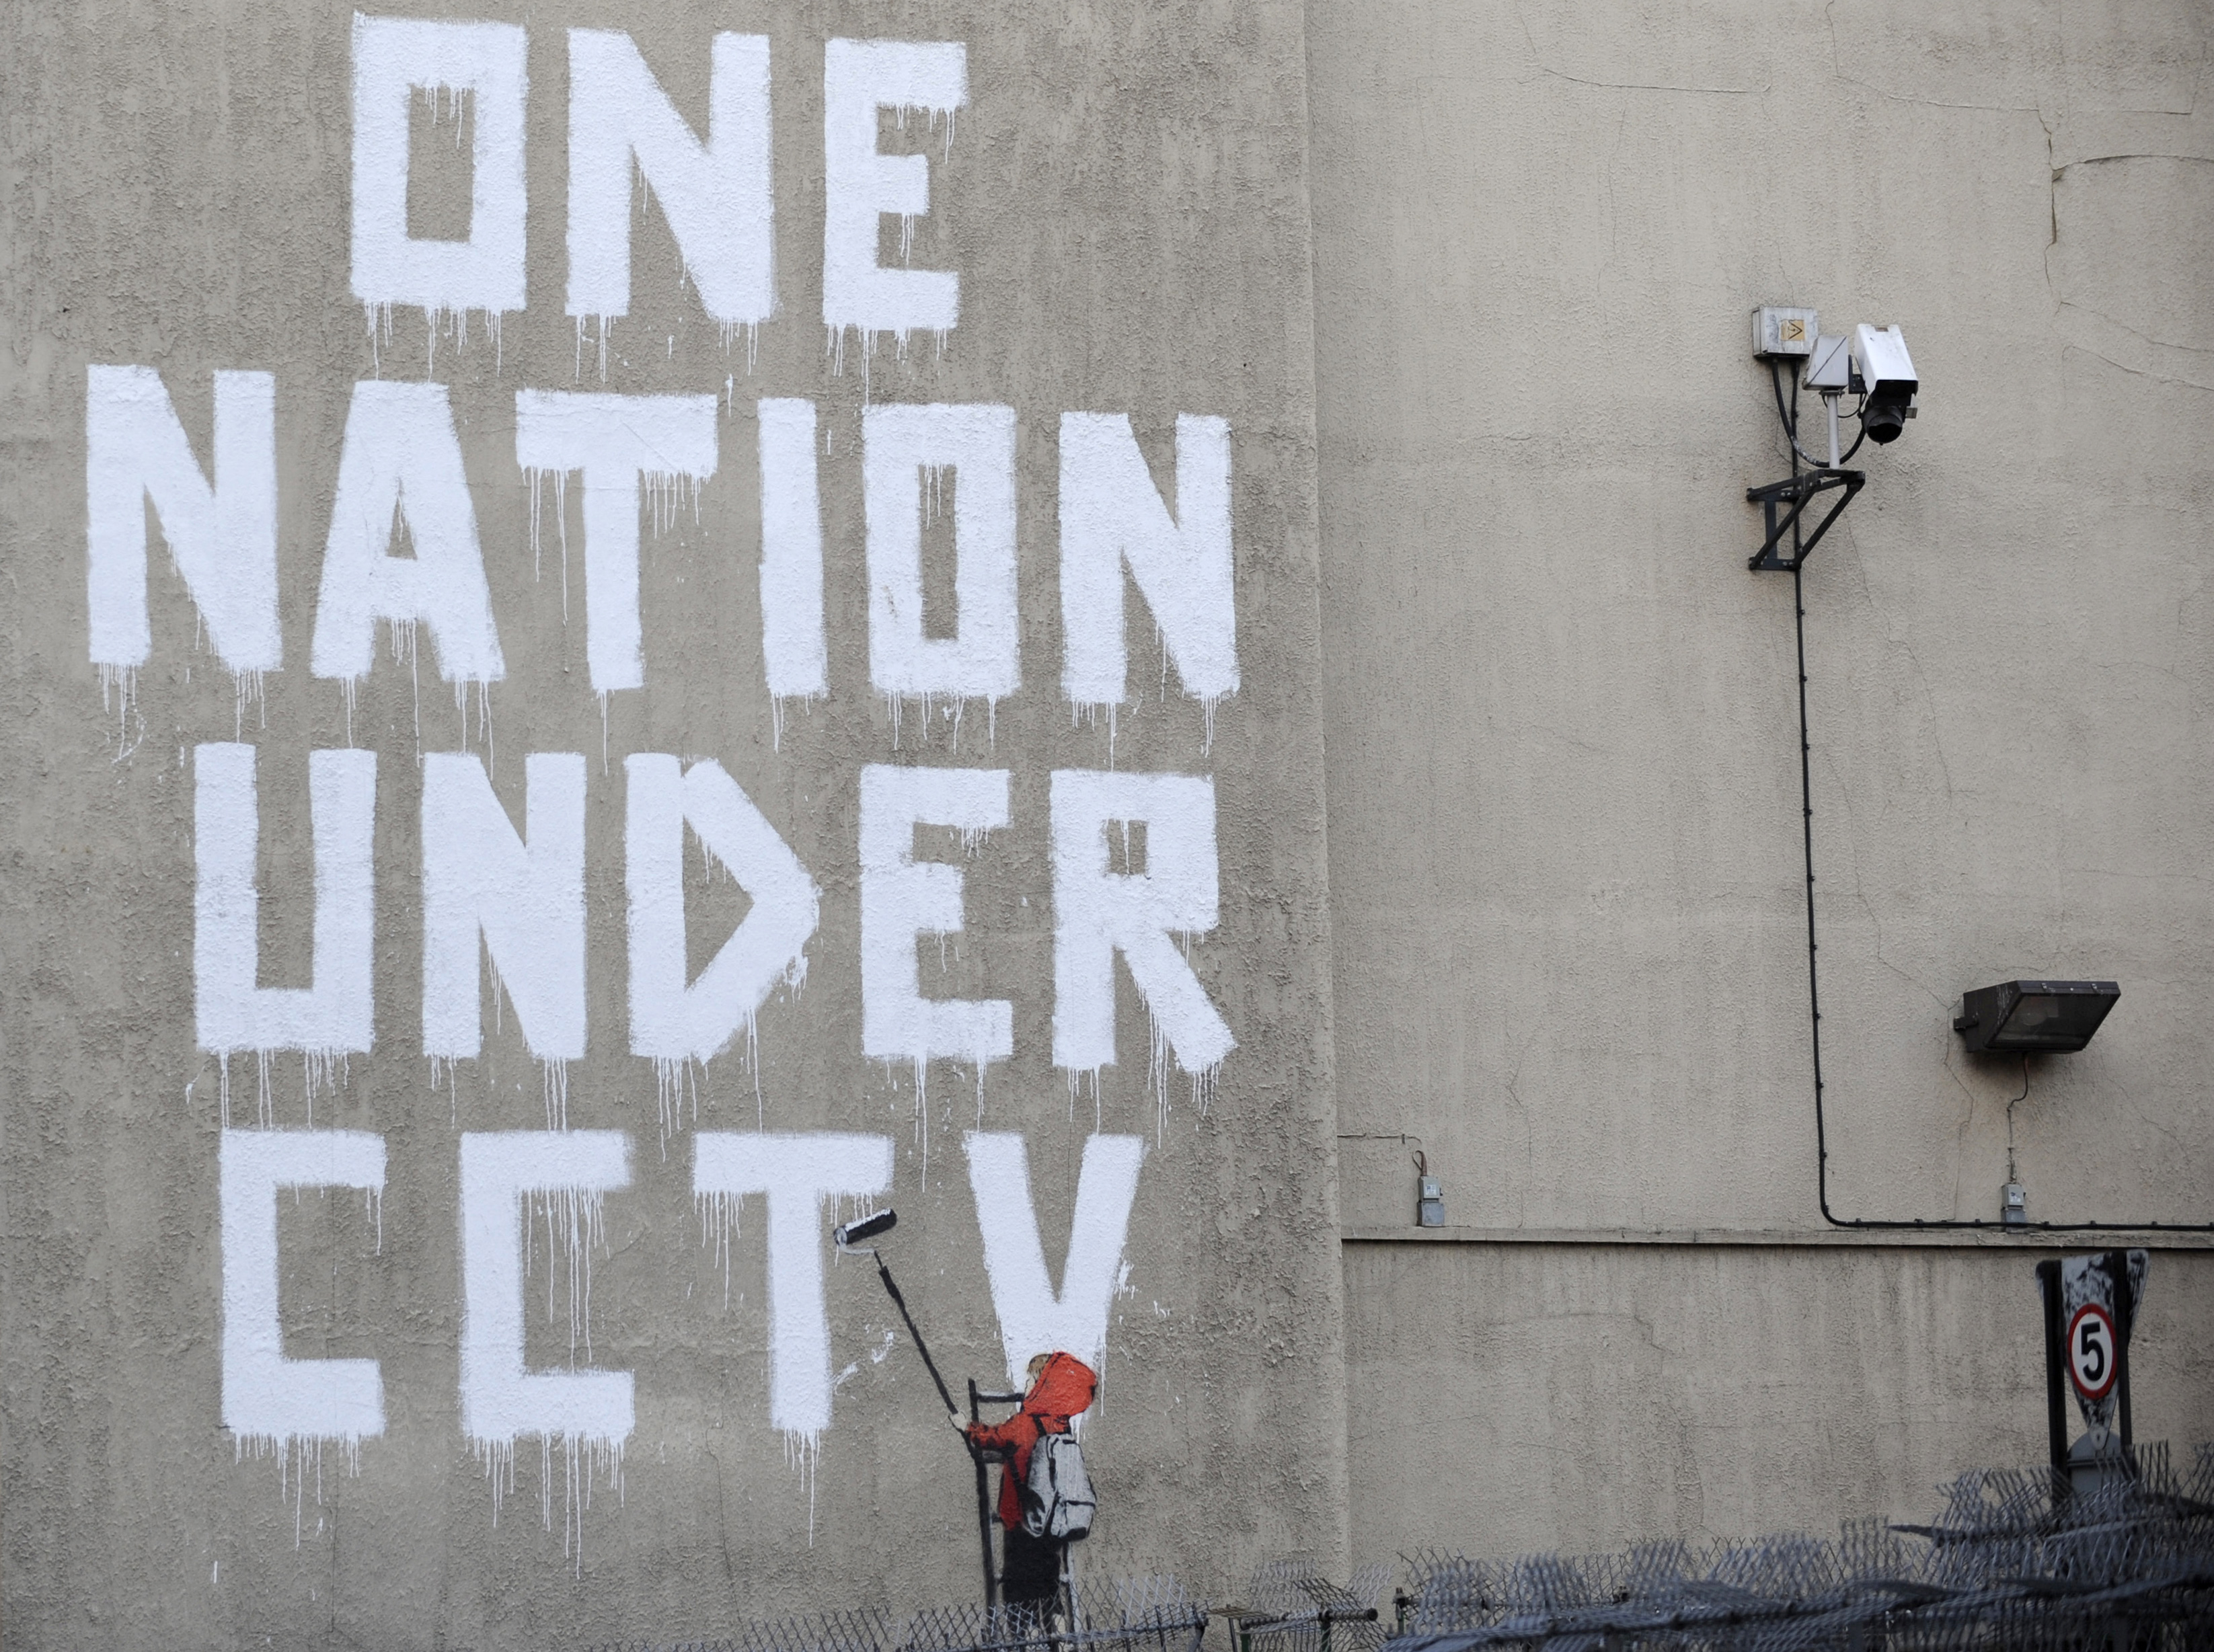 Street graffiti by elusive graffiti artist Banksy is seen on a wall, next to a CCTV camera, in central London on Nov. 25, 2008.